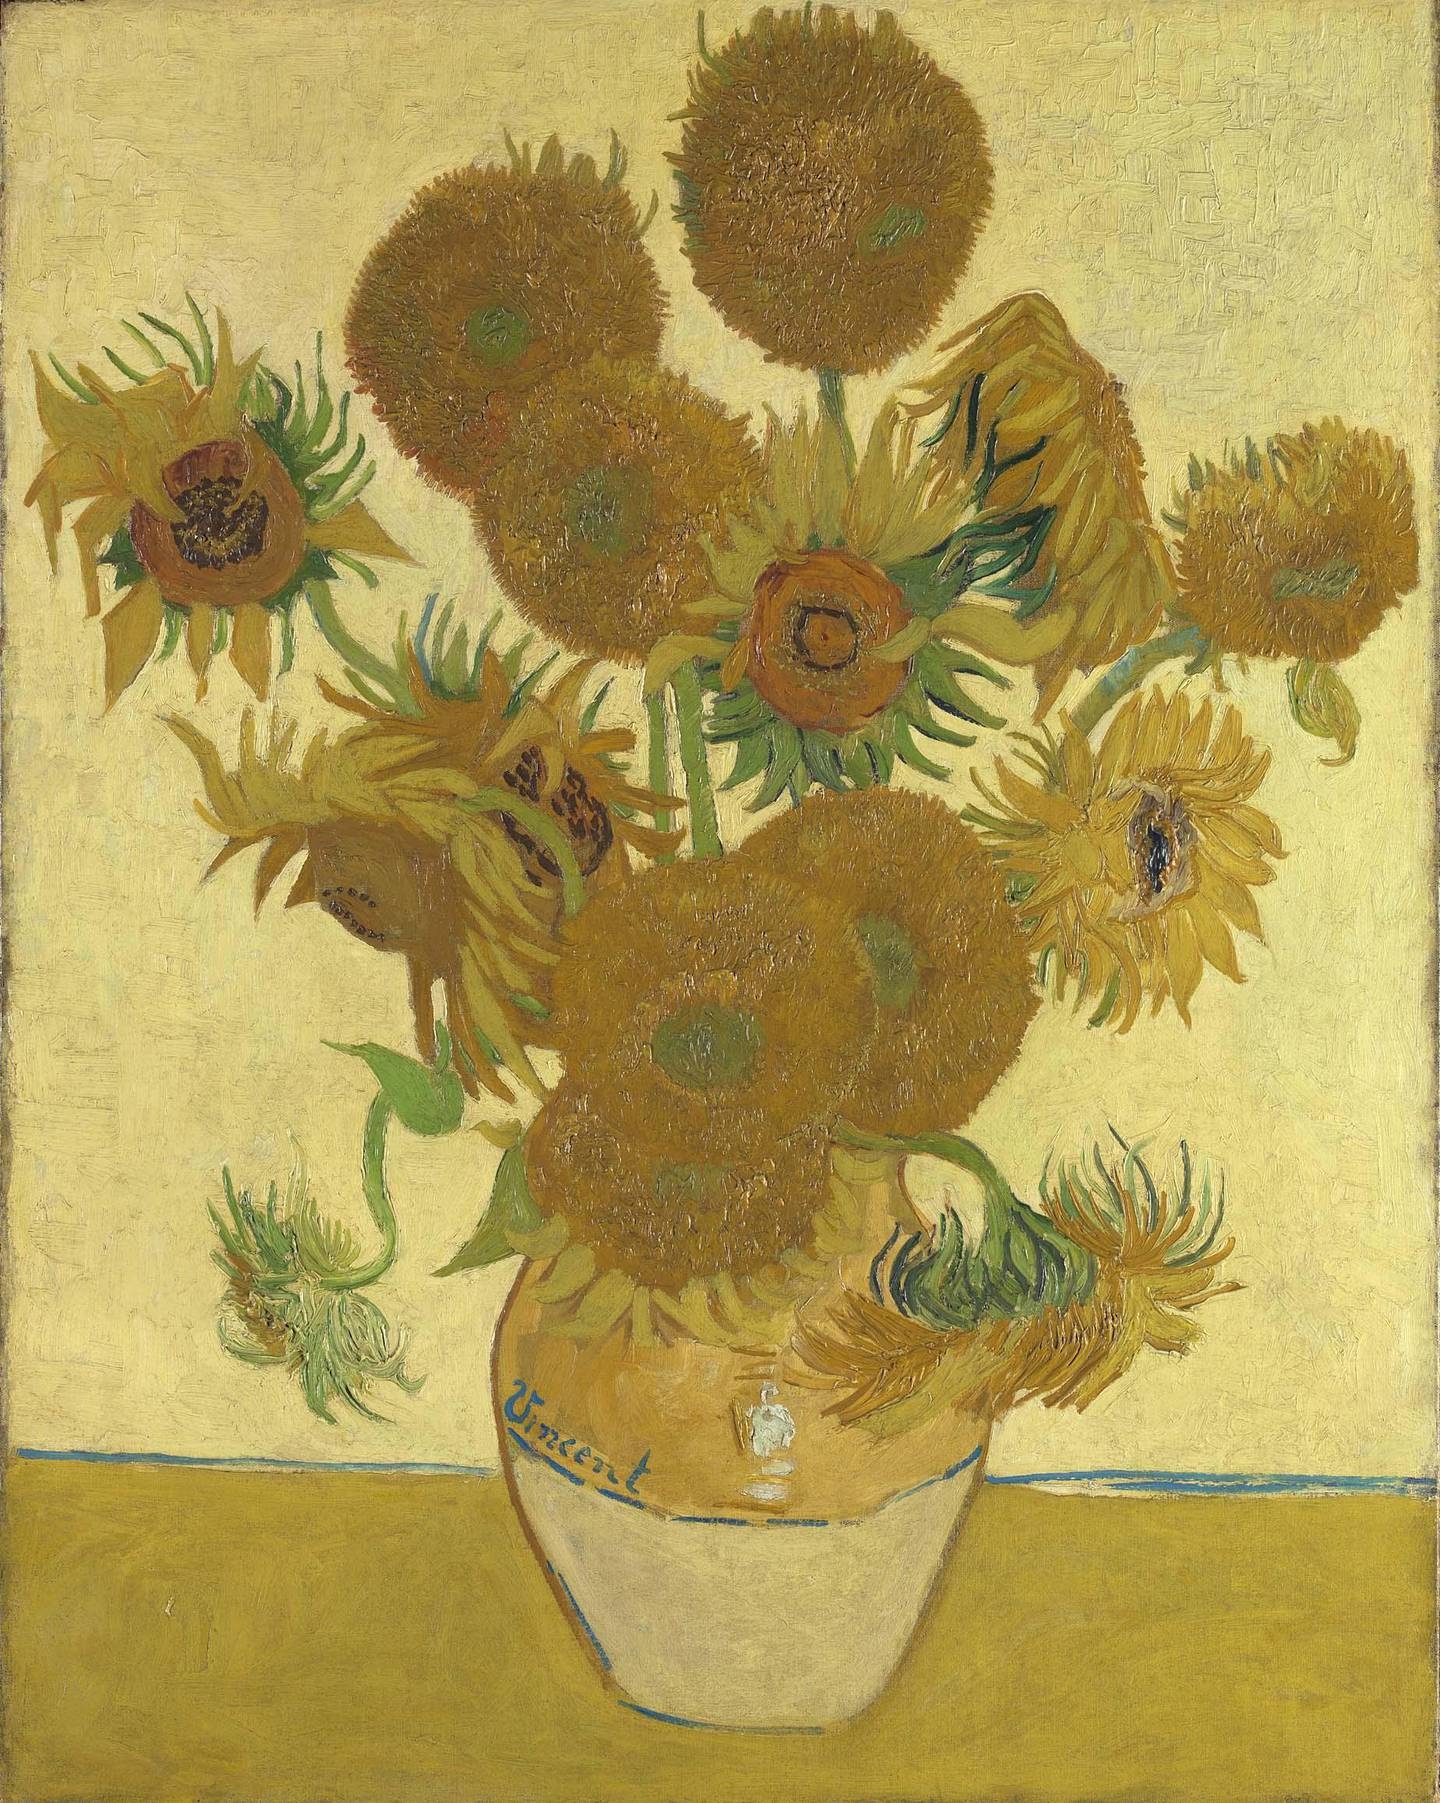 Vincent van Gogh (1853 – 1890) Sunflowers 1888 Oil paint on canvas 921 x 730 mm © The National Gallery, London/ Bought, Courtauld Fund, 1924